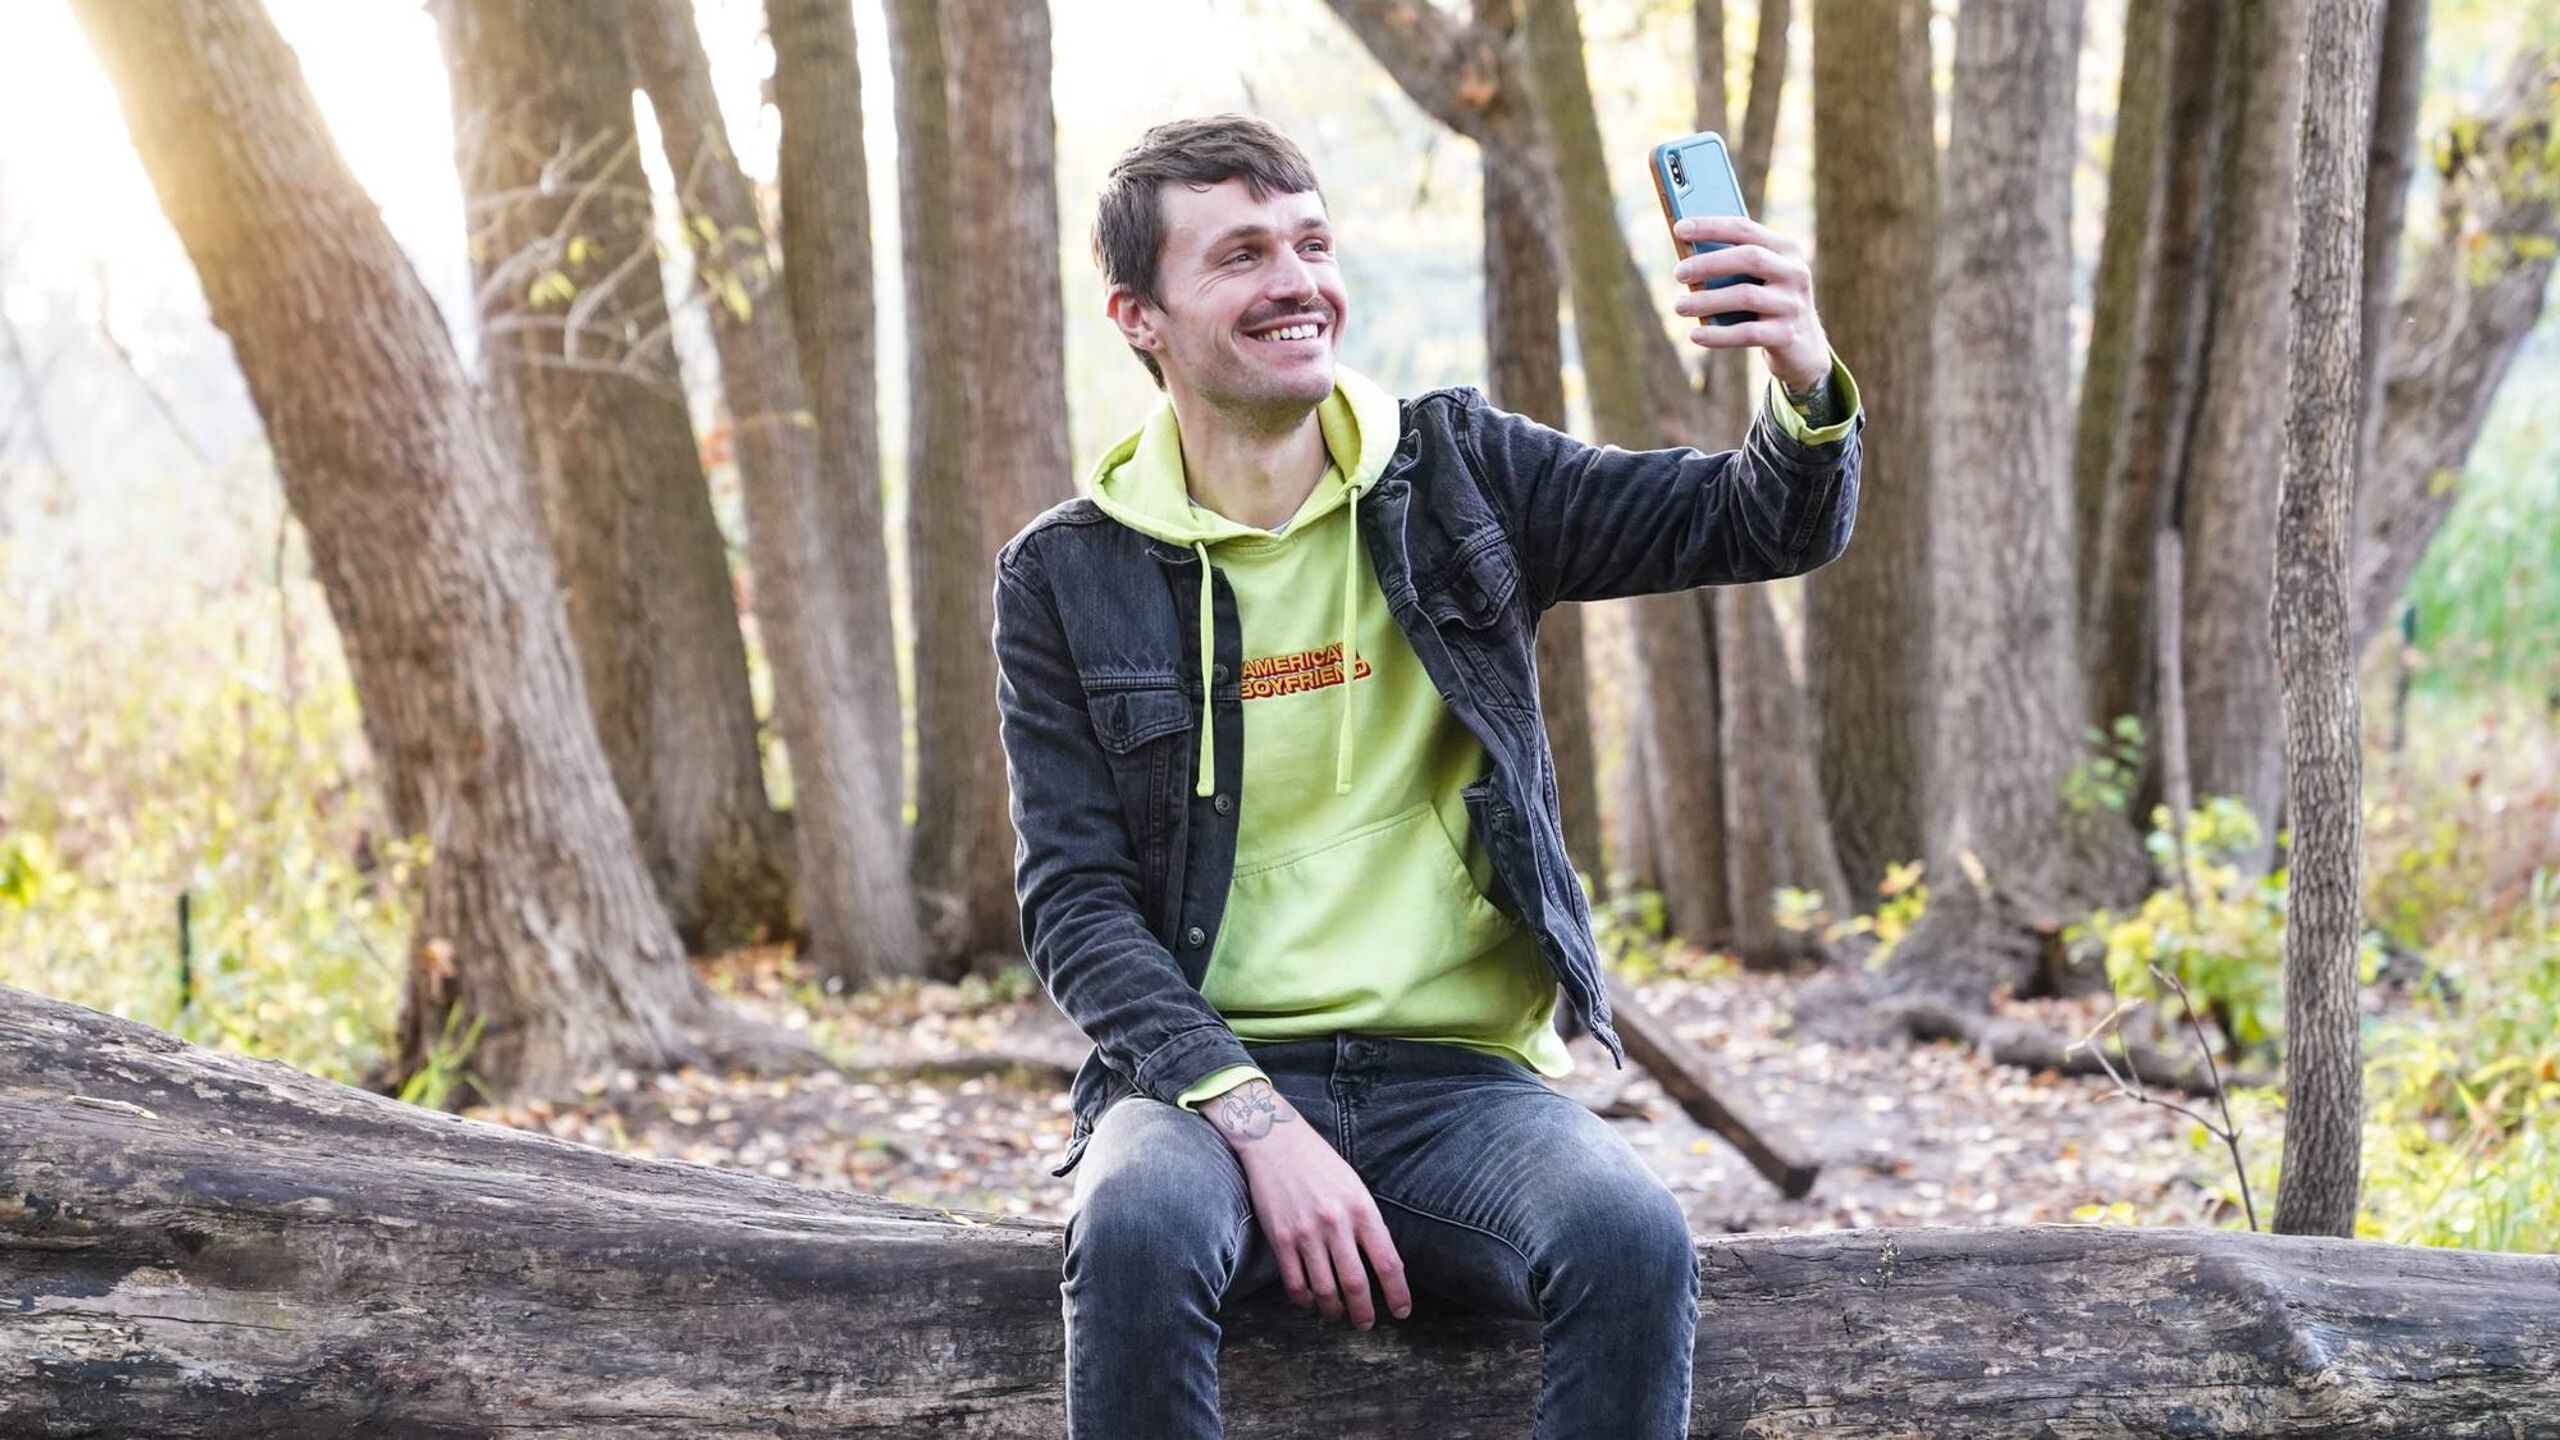 A smiling man sits on a log and holds up a smart phone to take a selfie, online lives, rewire